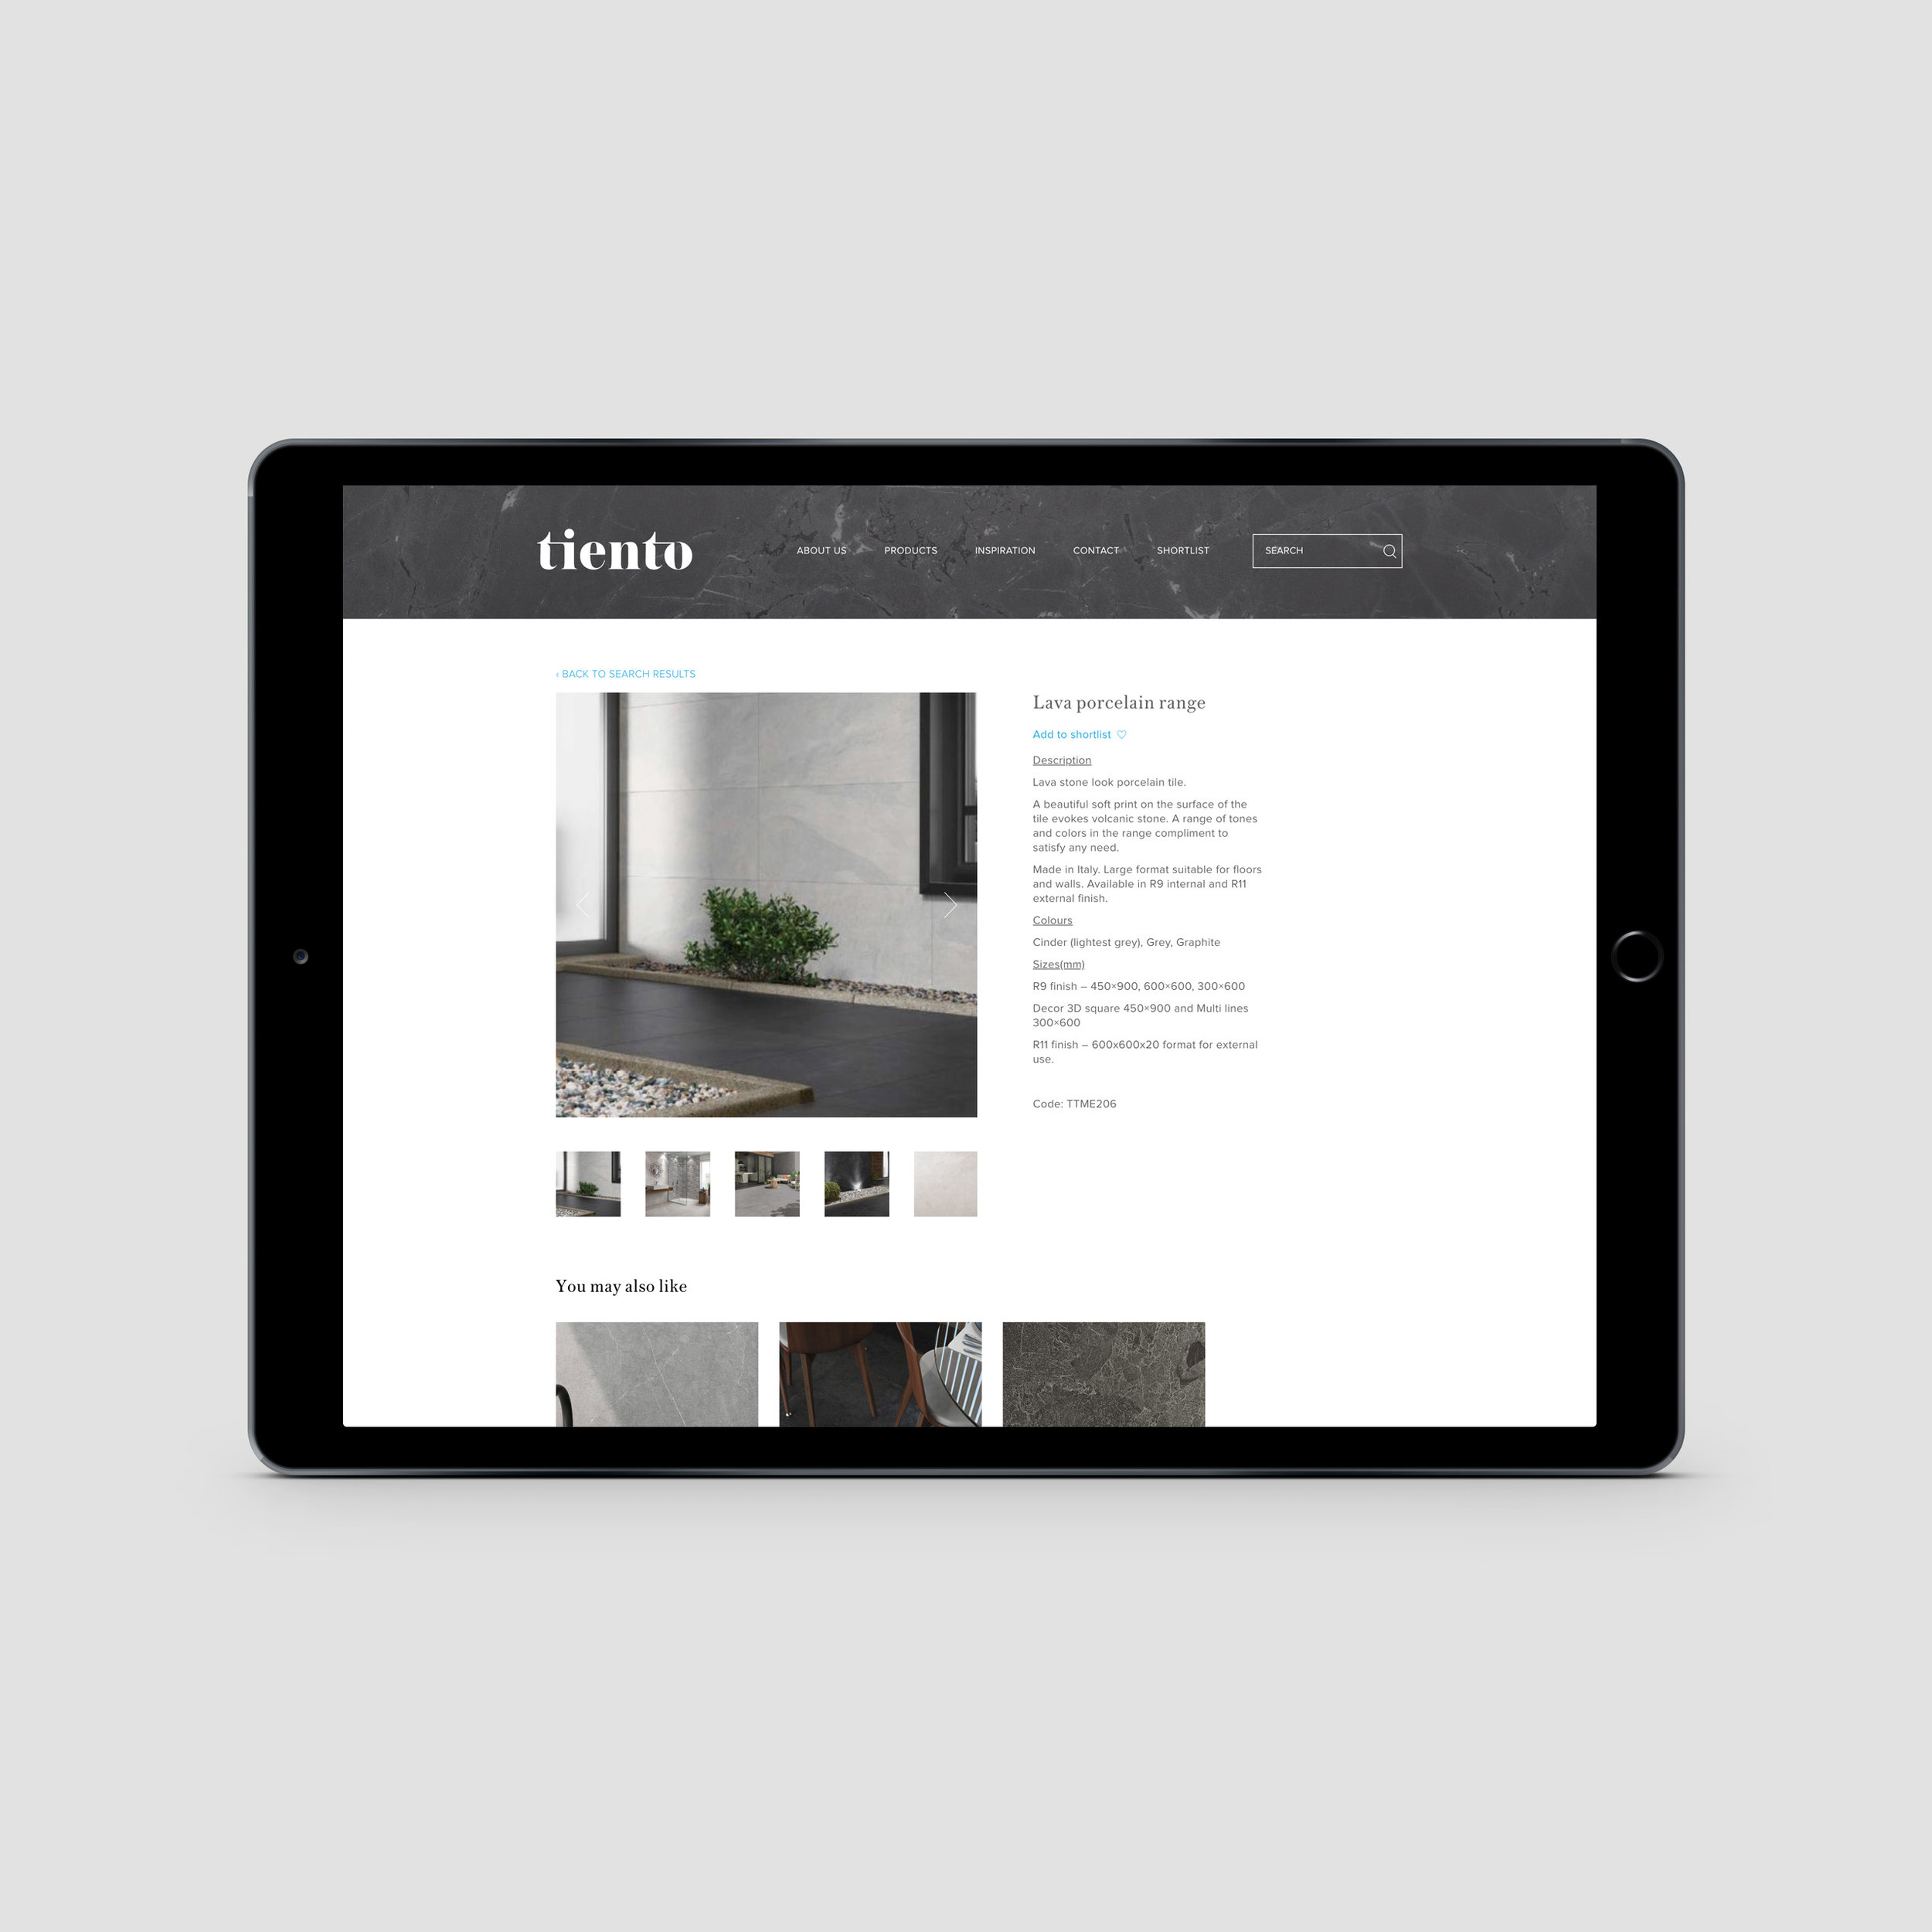 tiento website search functionality